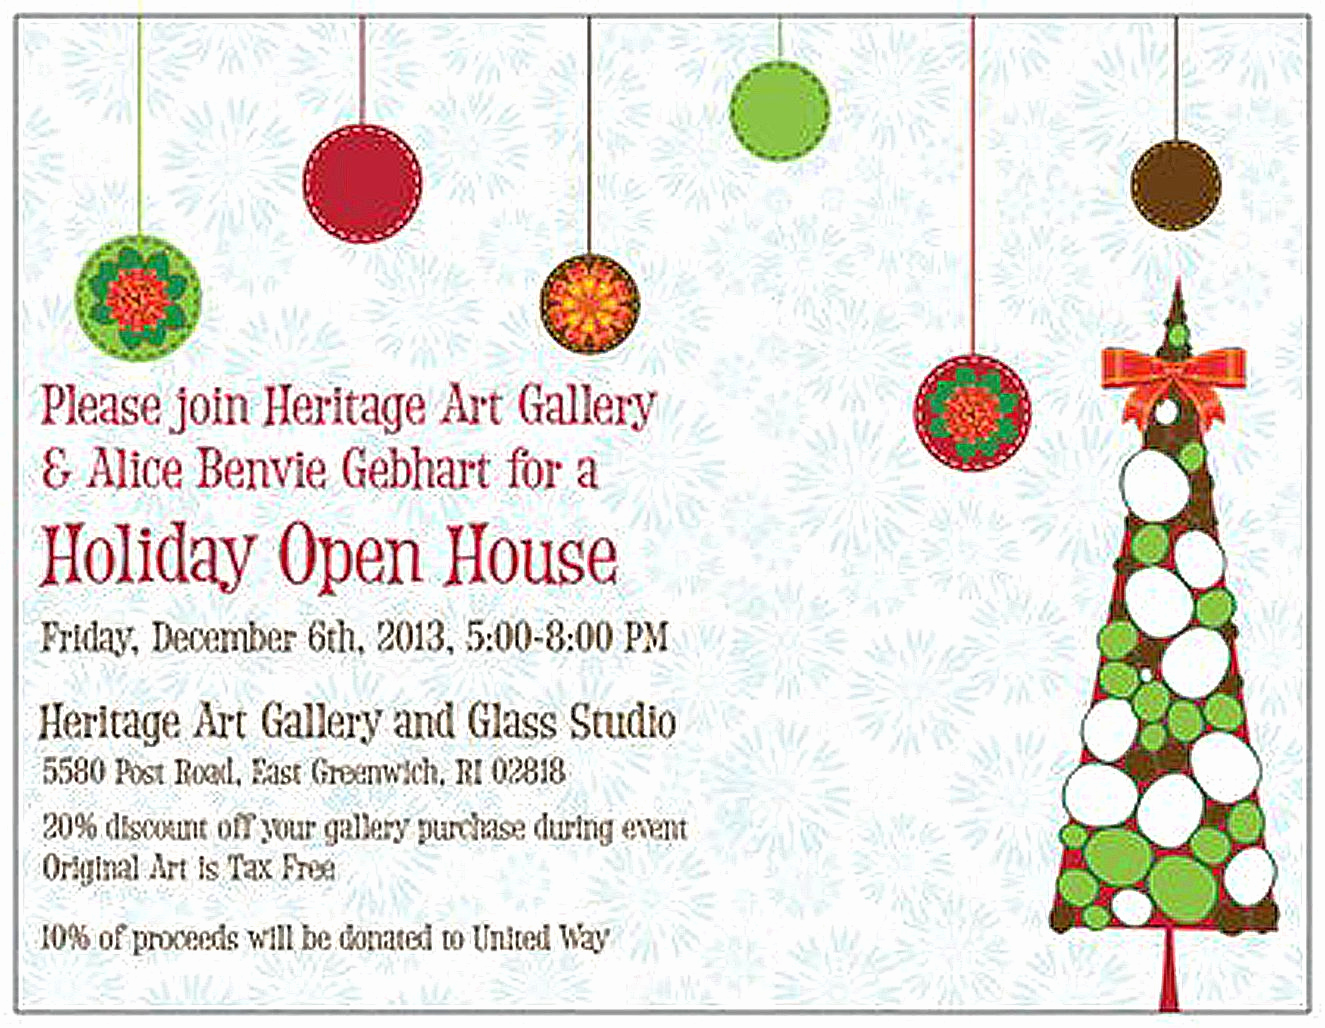 Scentsy Party Invitation Wording Unique Holiday Open House 2013 Invitation Business